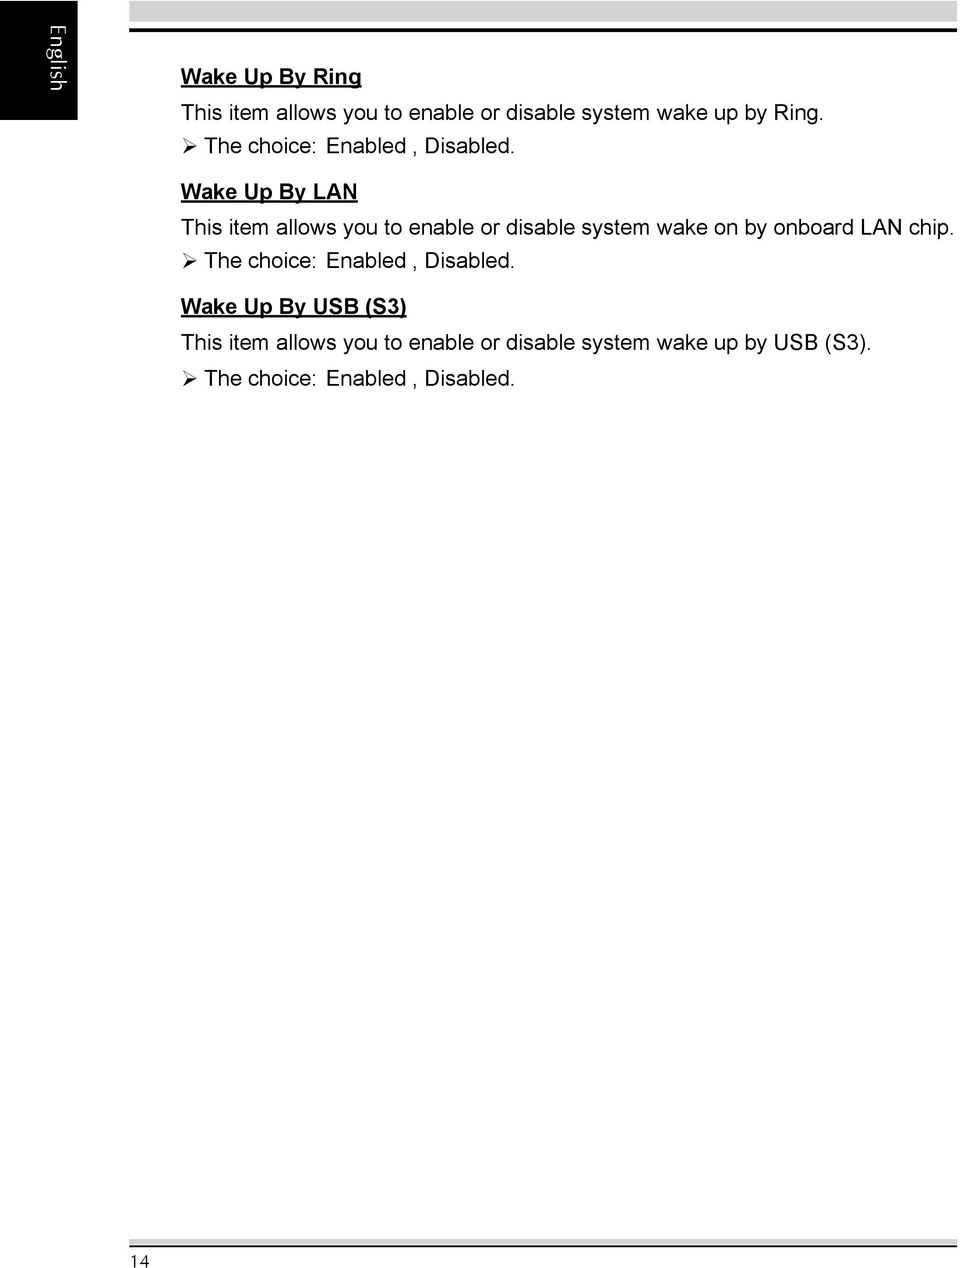 Wake Up By LAN This item allows you to enable or disable system wake